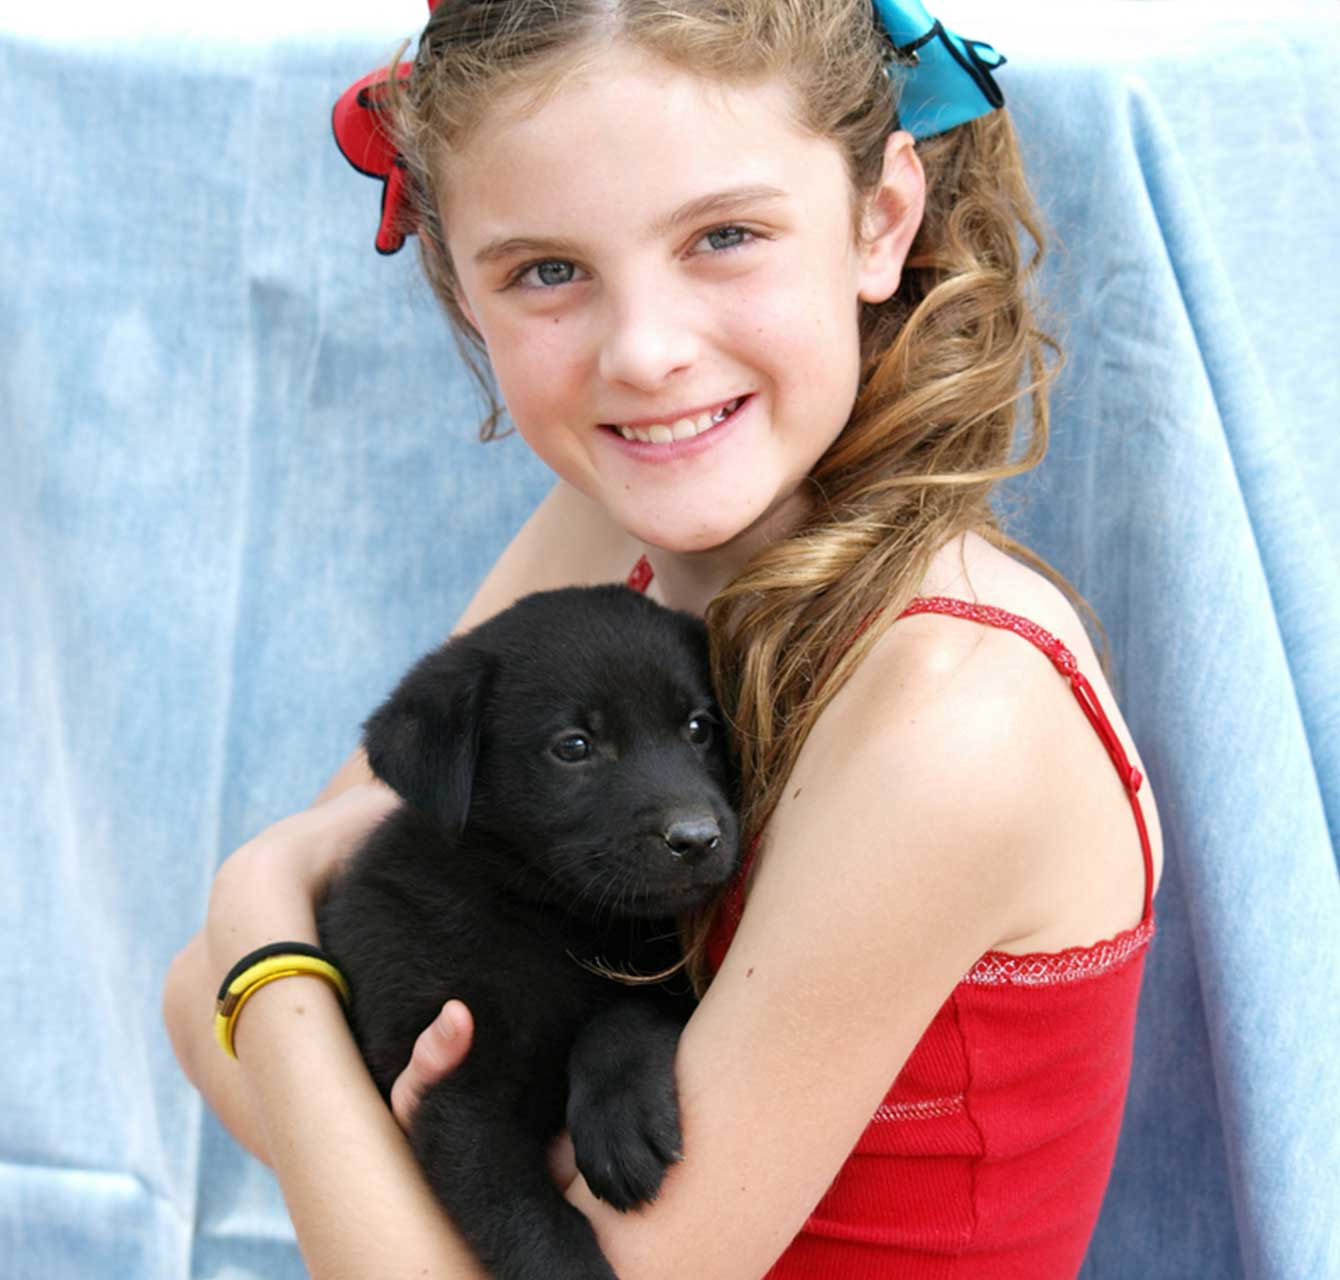 Girl holding cute puppy